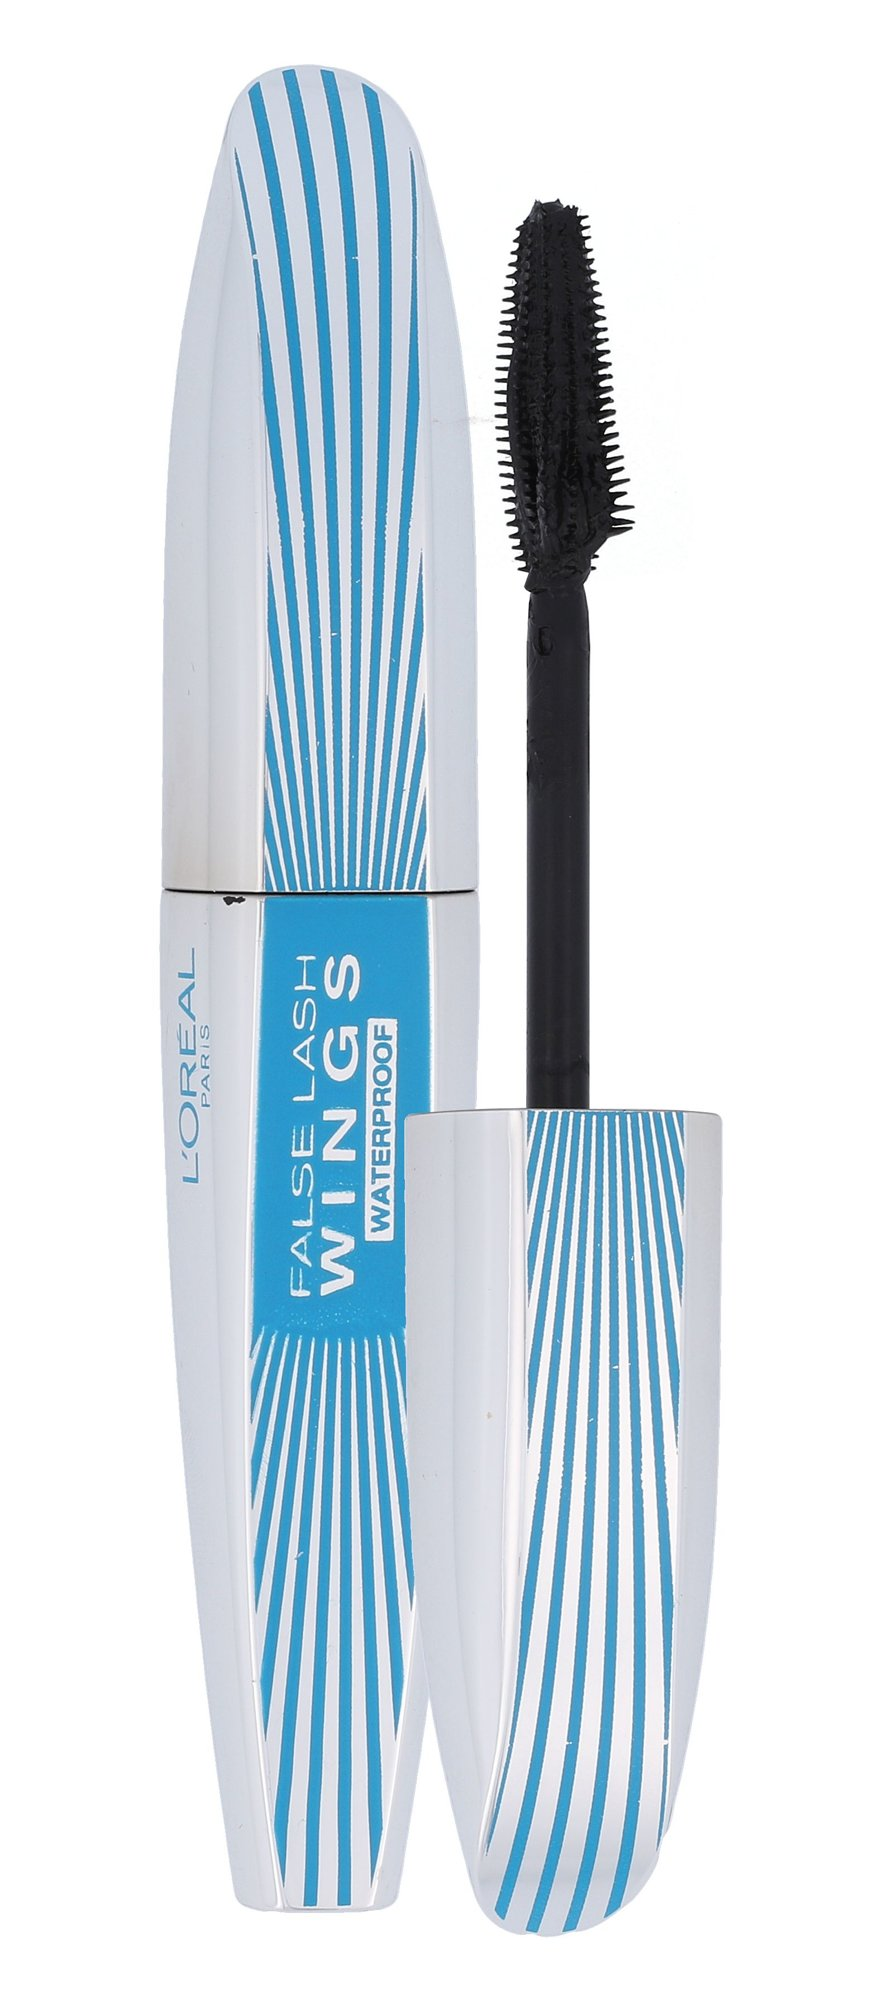 L´Oreal Paris False Lash Wings Mascara Waterproof Cosmetic 7ml Black